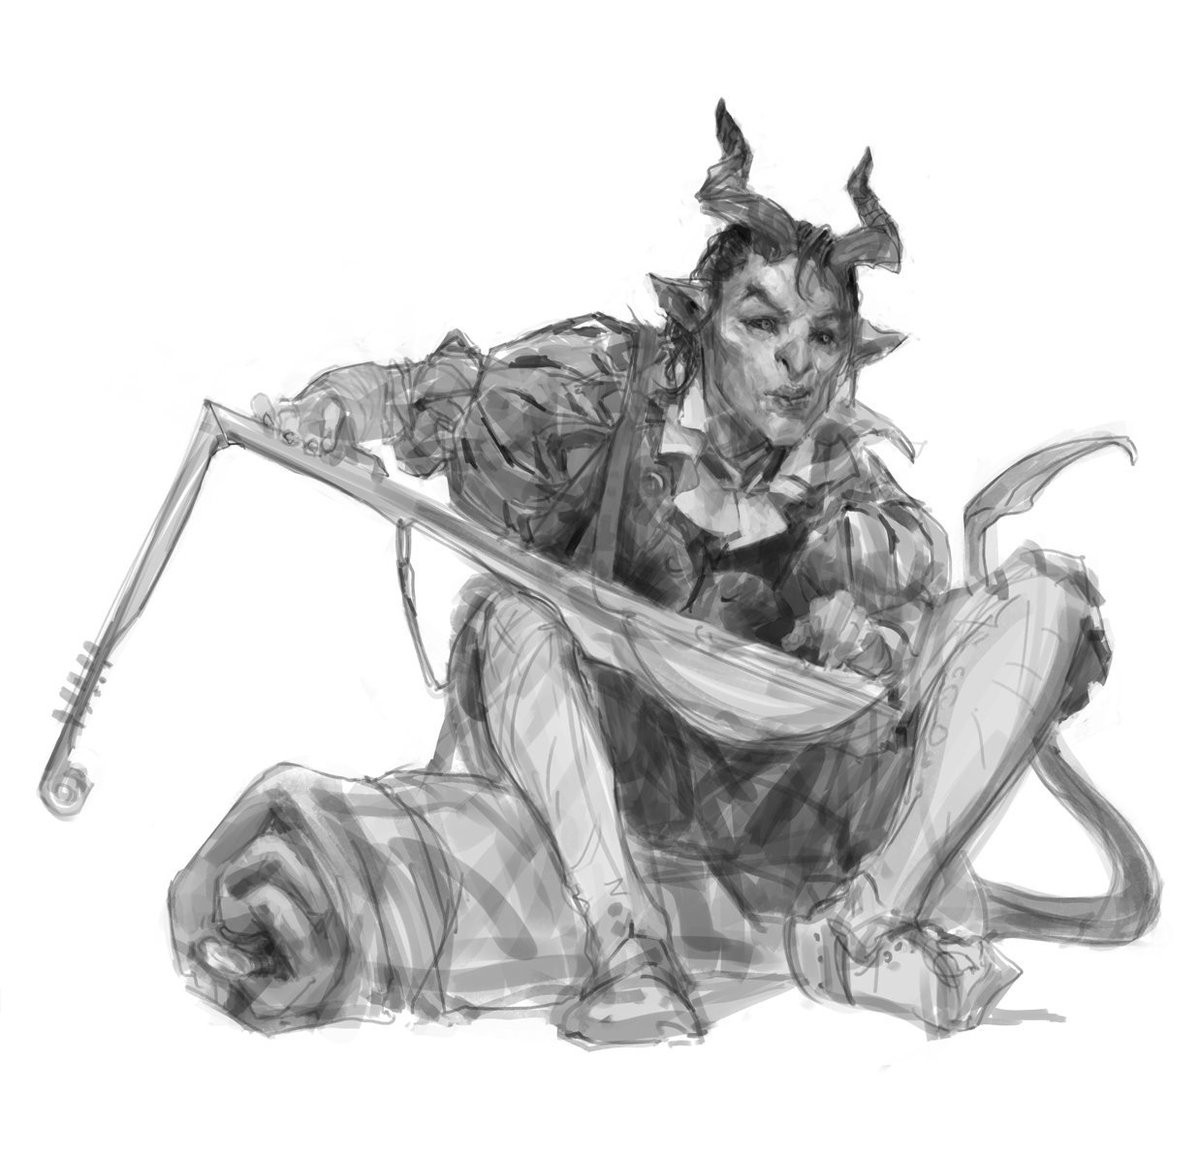 9c43555320f0 I wanted to go a little off model for the typical tiefling anatomy and try  a different look.  dnd  DragonHeist  Waterdeeppic.twitter.com IpBY0Vhxwl